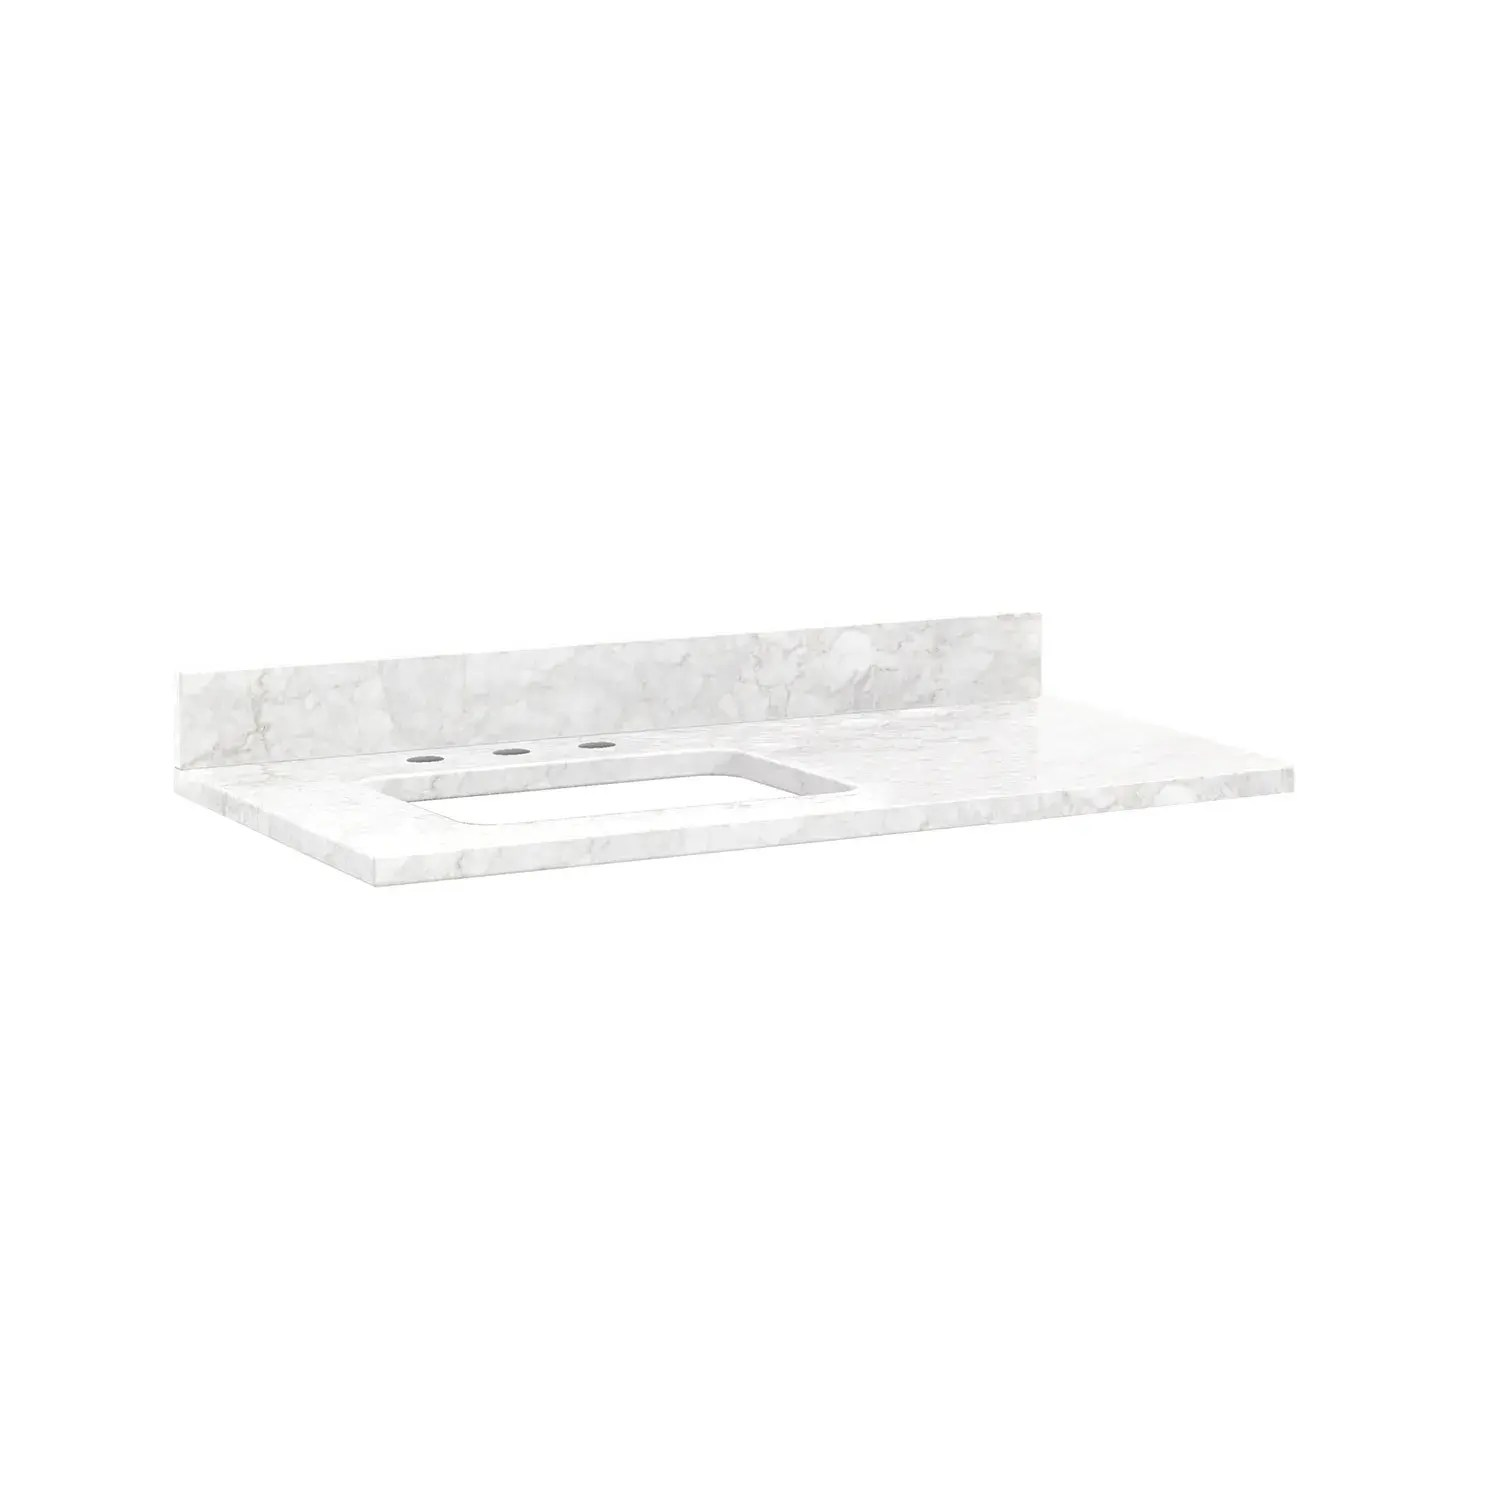 43 x 22 3cm marble vanity top for left offset rectangular undermount sink white carrara 8 faucet holes w sink